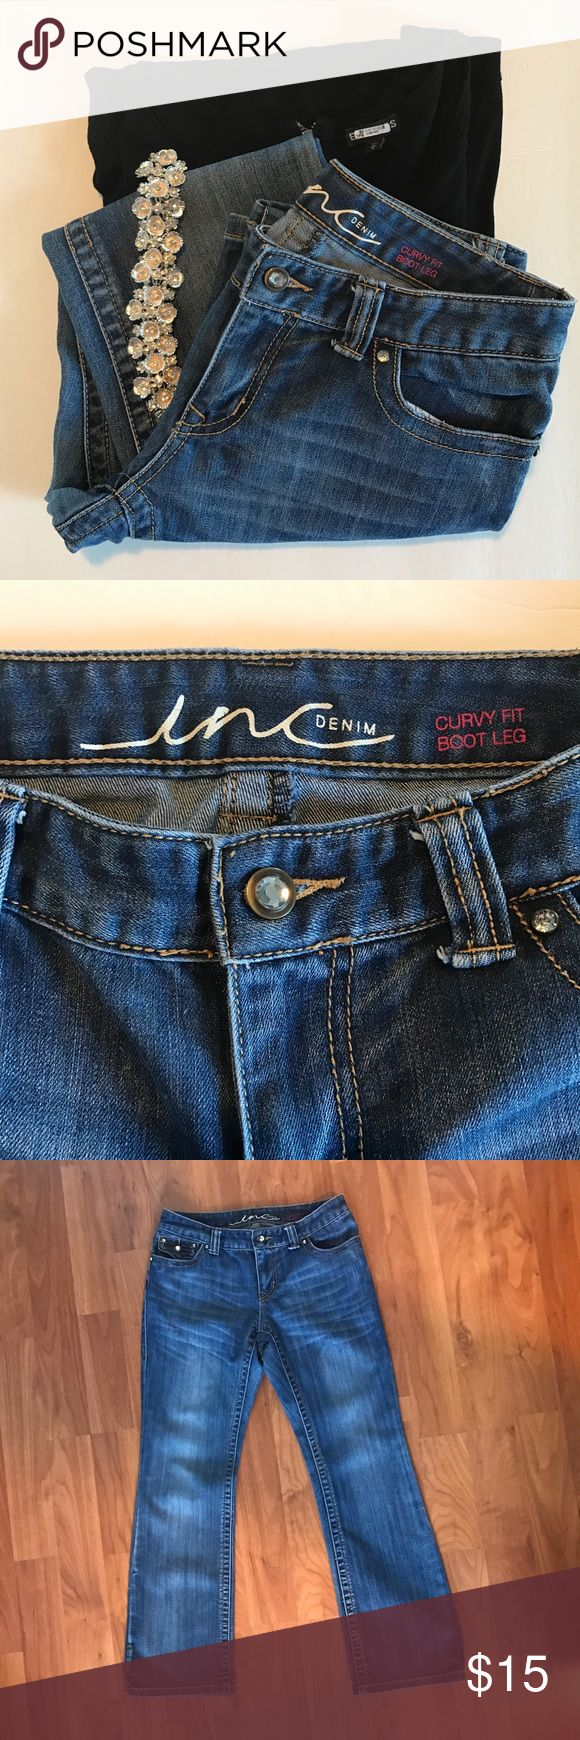 "Inc Curvy Bootcut Jeans Inc Curvy Bootcut Jeans with rhinestones, size 6, medium wash, smoke free home, Like New  Waist: 28"" Front rise: 8"" Back rise: 13 1/2"" Inseam: 29"" Leg opening: 18"" INC International Concepts Jeans Boot Cut"